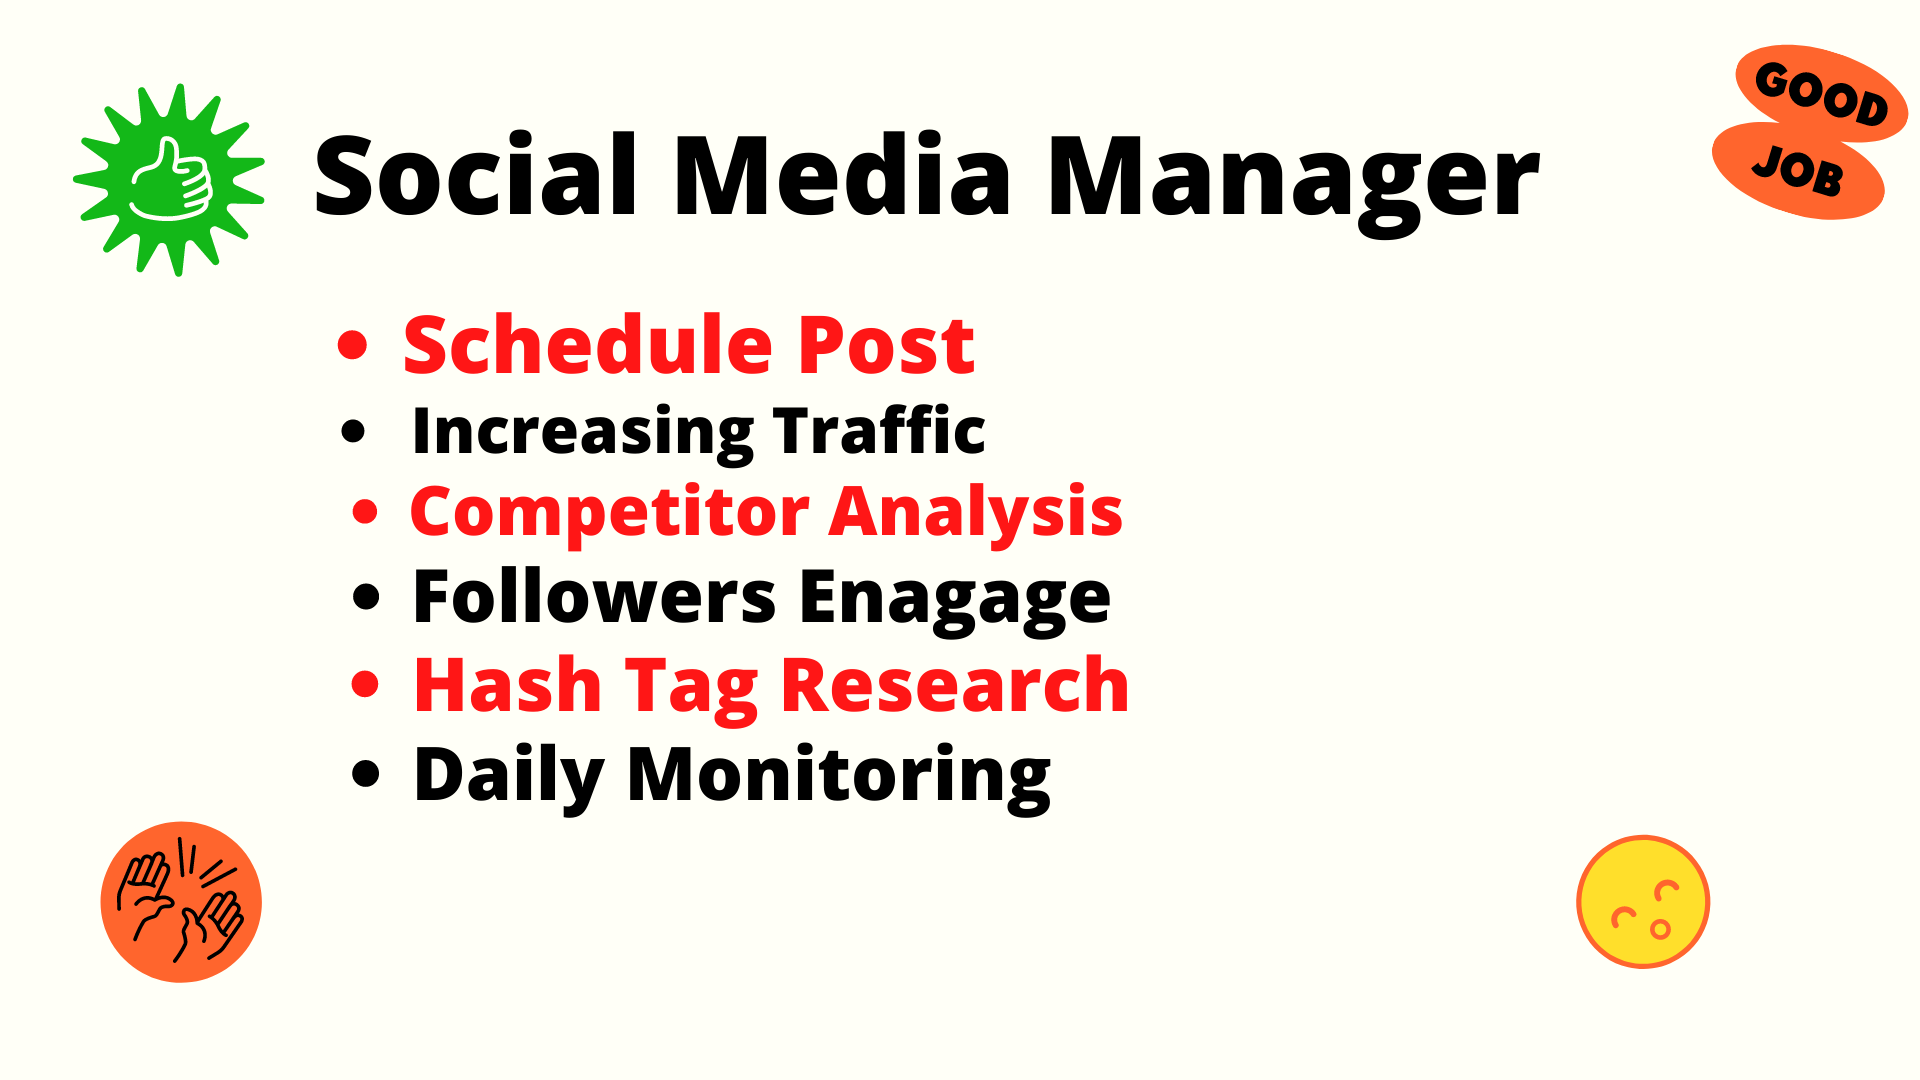 I want to be your Social Media Manager